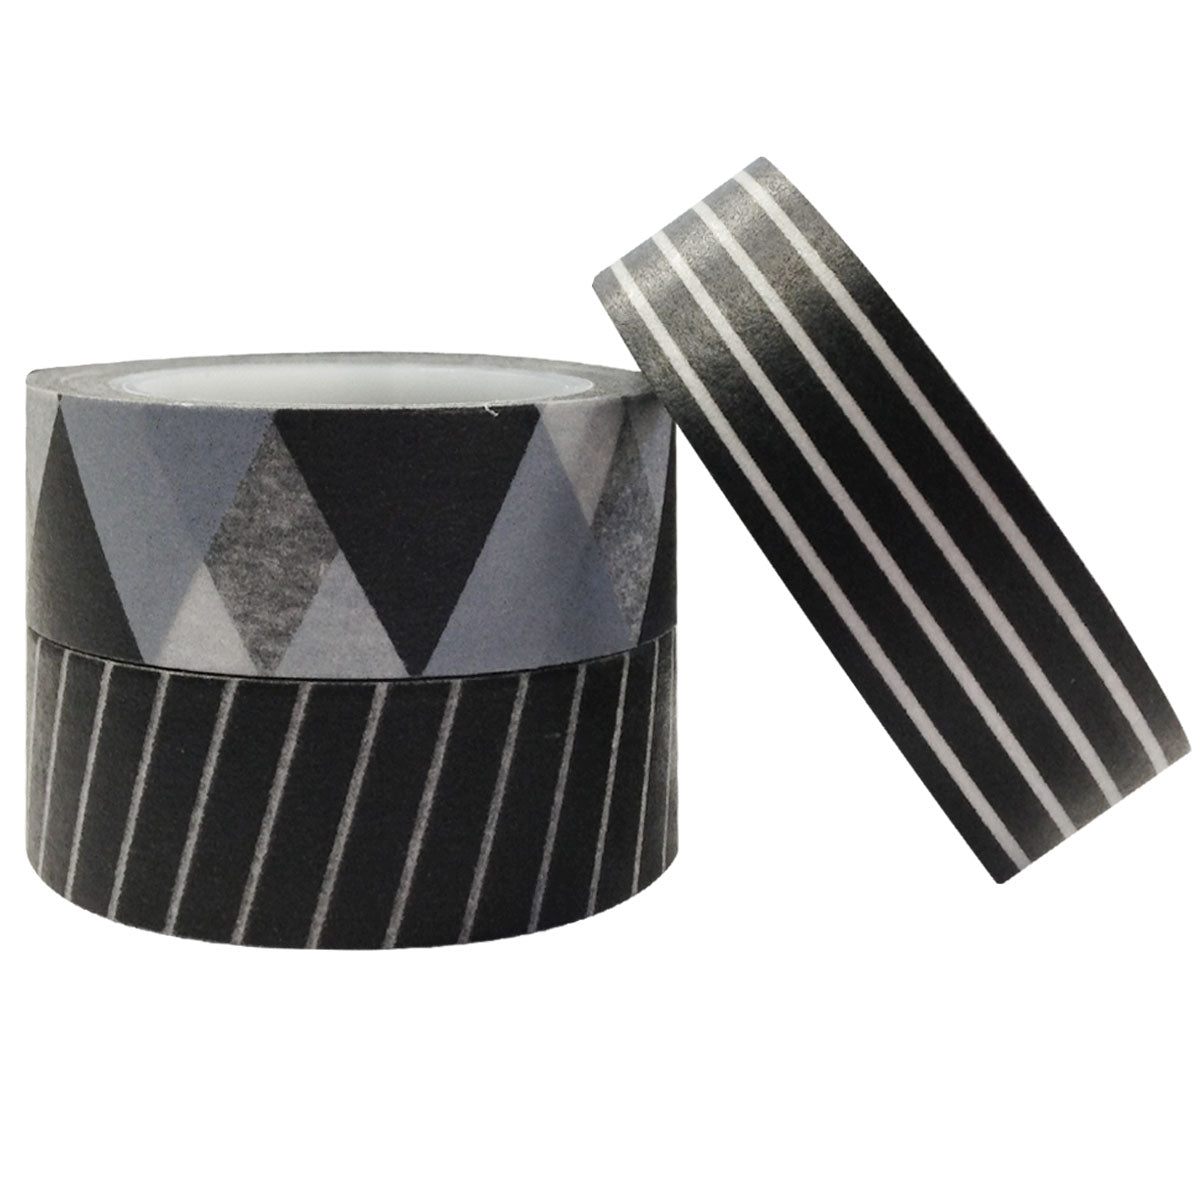 Tuxedo Japanese Washi Masking Tape (set of 3)